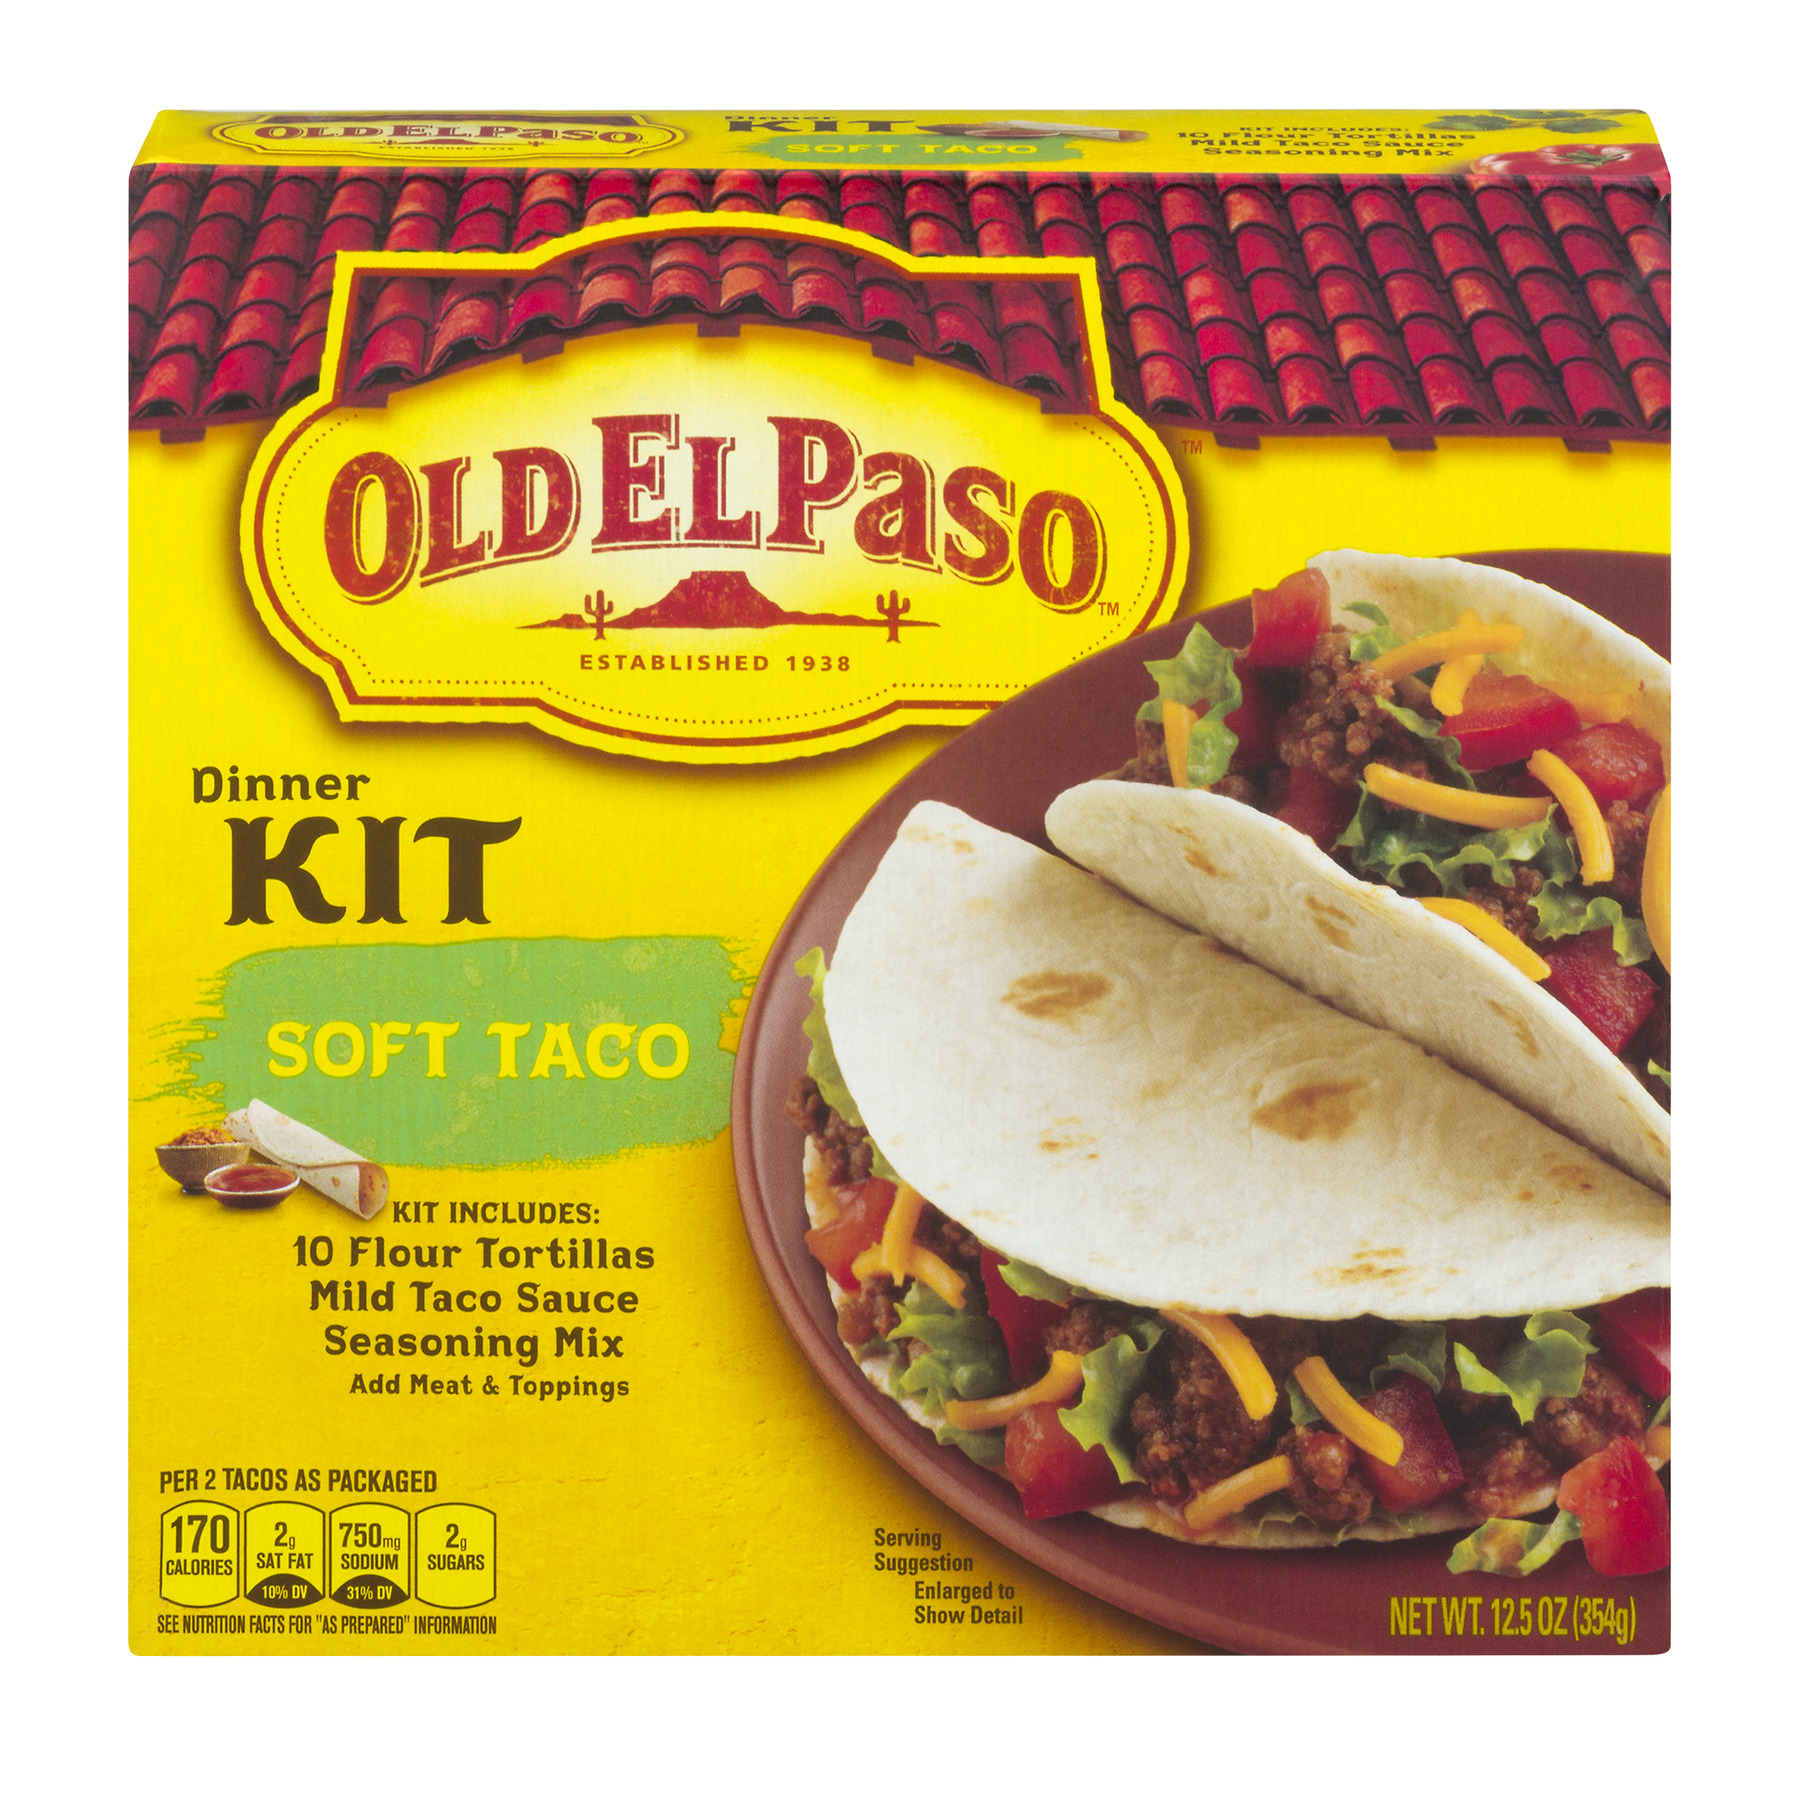 Old El Paso™ Soft Taco Dinner Kit 12.5 oz Box